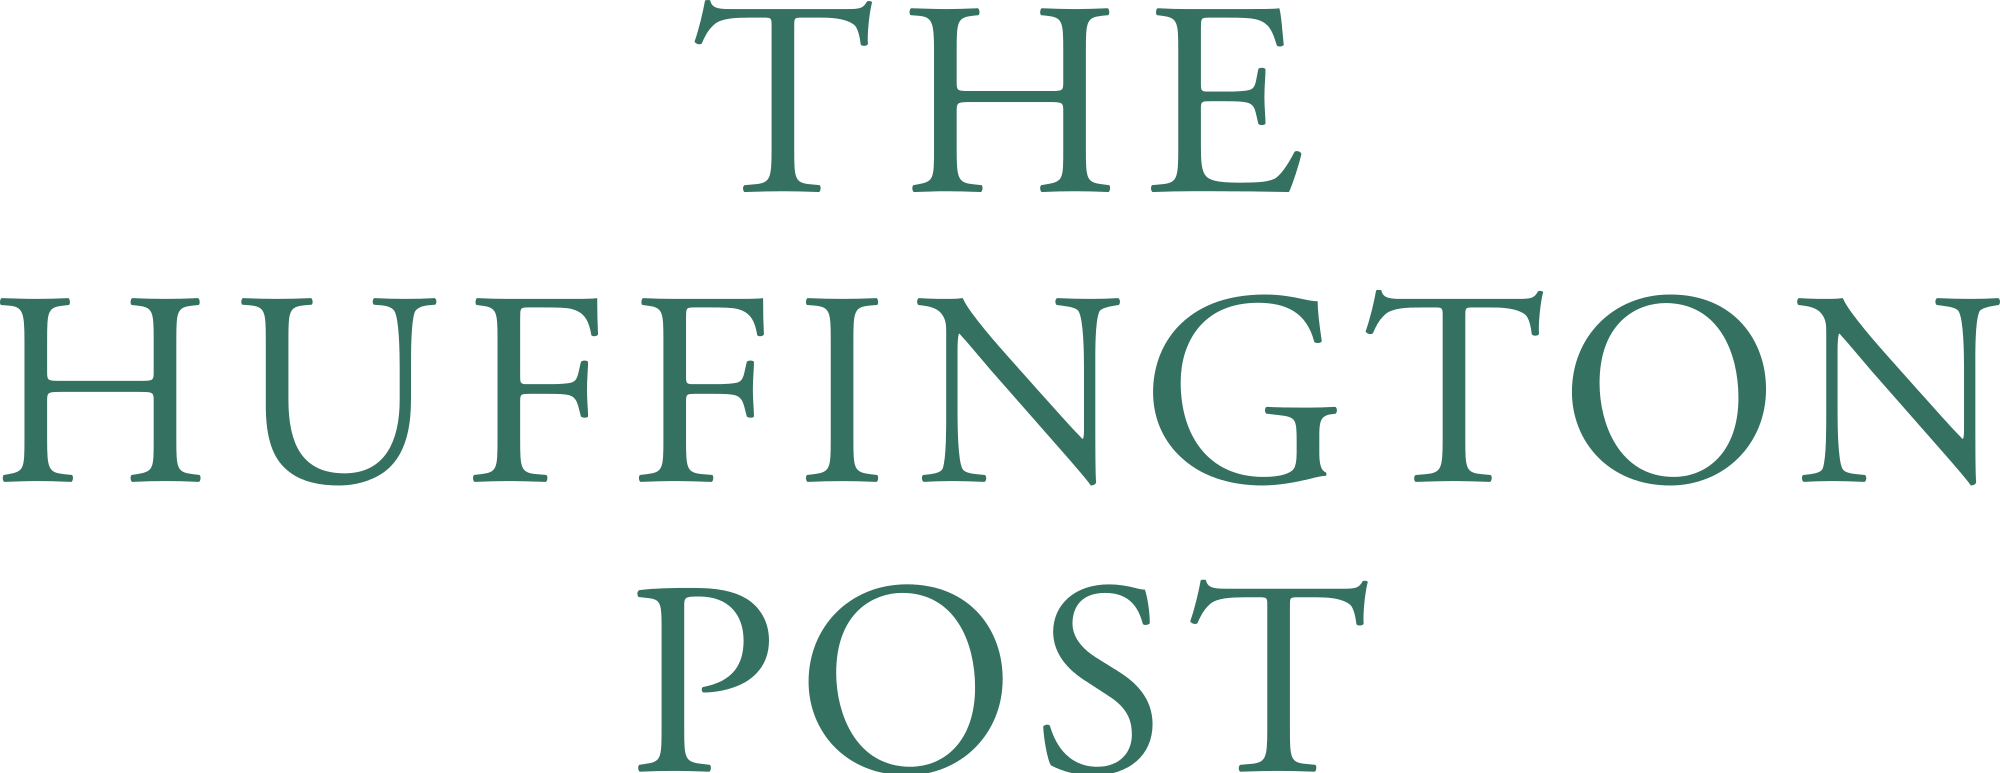 6 - The Huffington Post.png